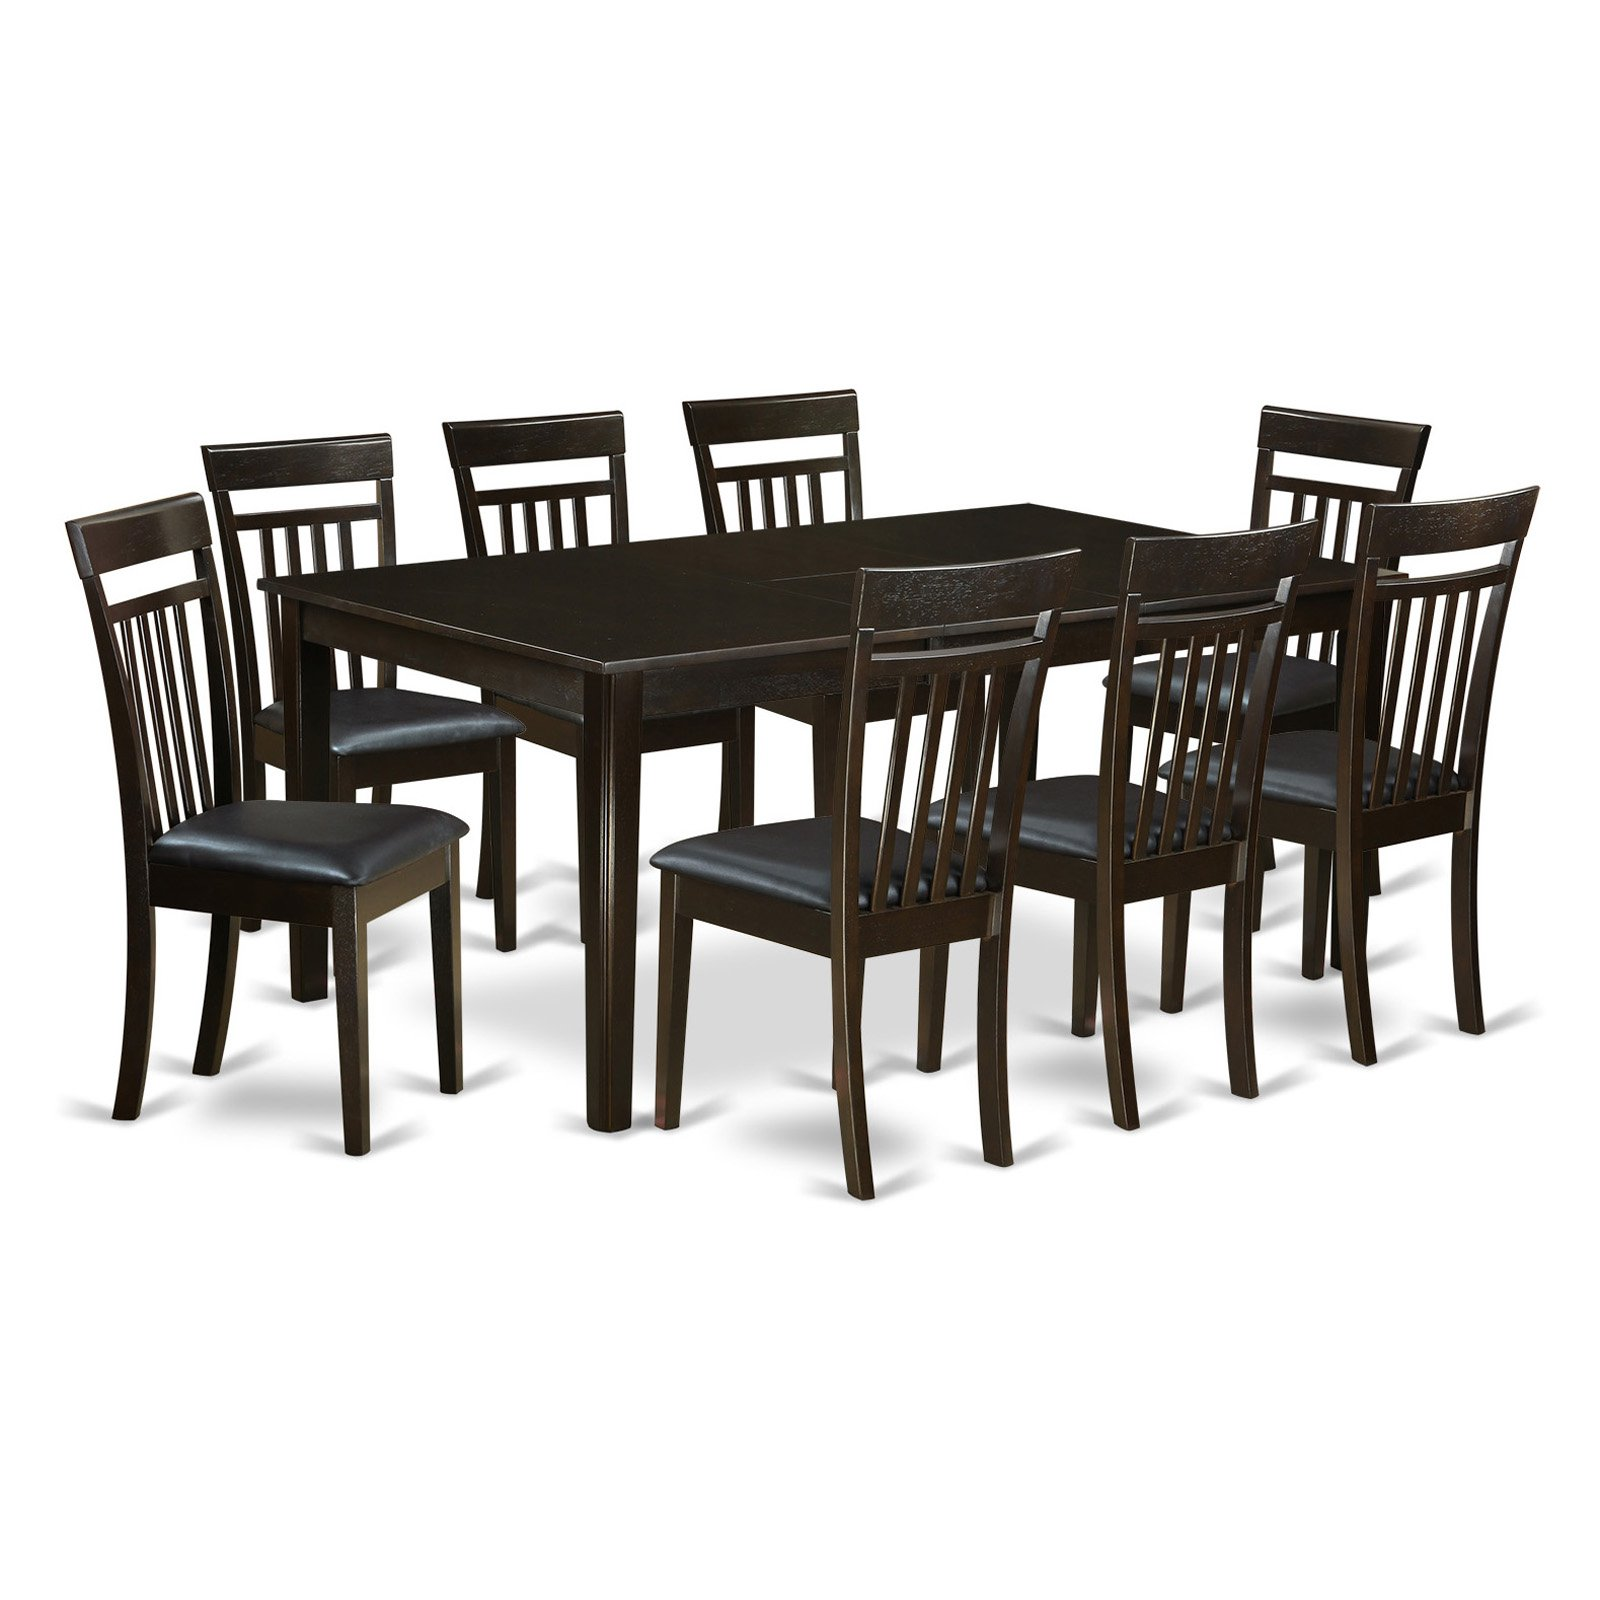 East West Furniture Henley 9 Piece Extension Dining Table Set with Capri Chairs